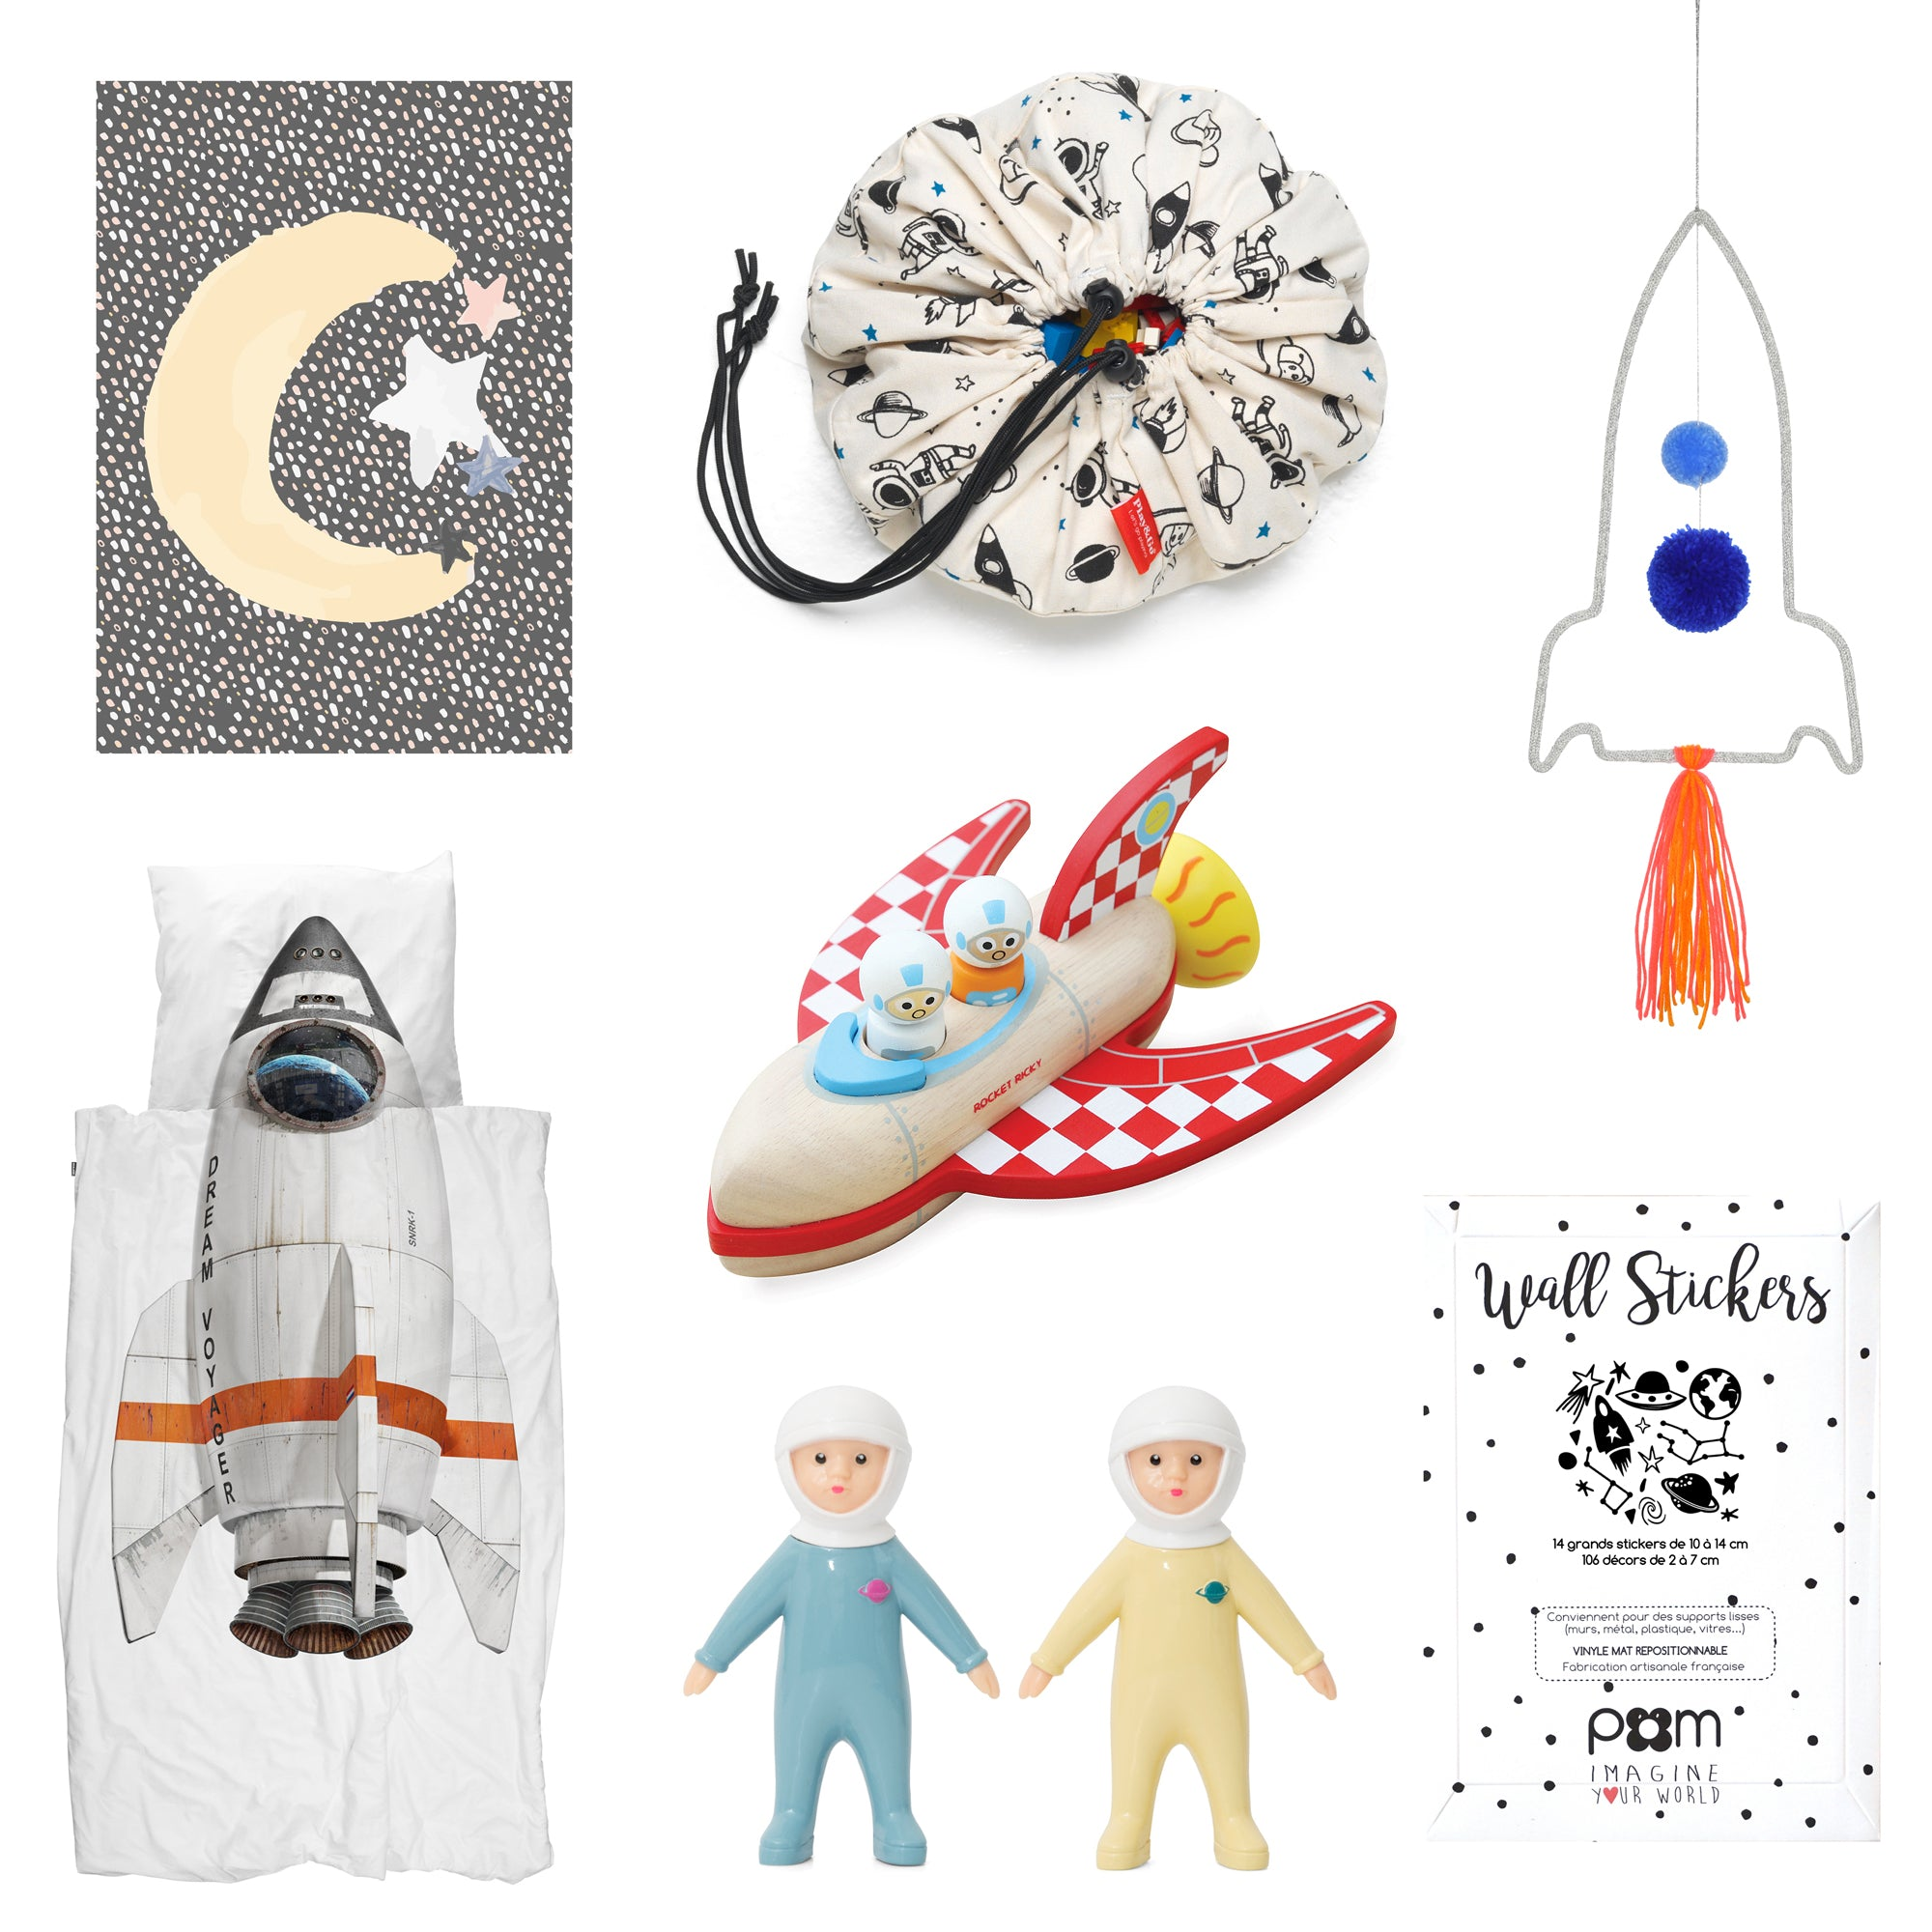 Space-themed children's room decor, available at Bobby Rabbit.